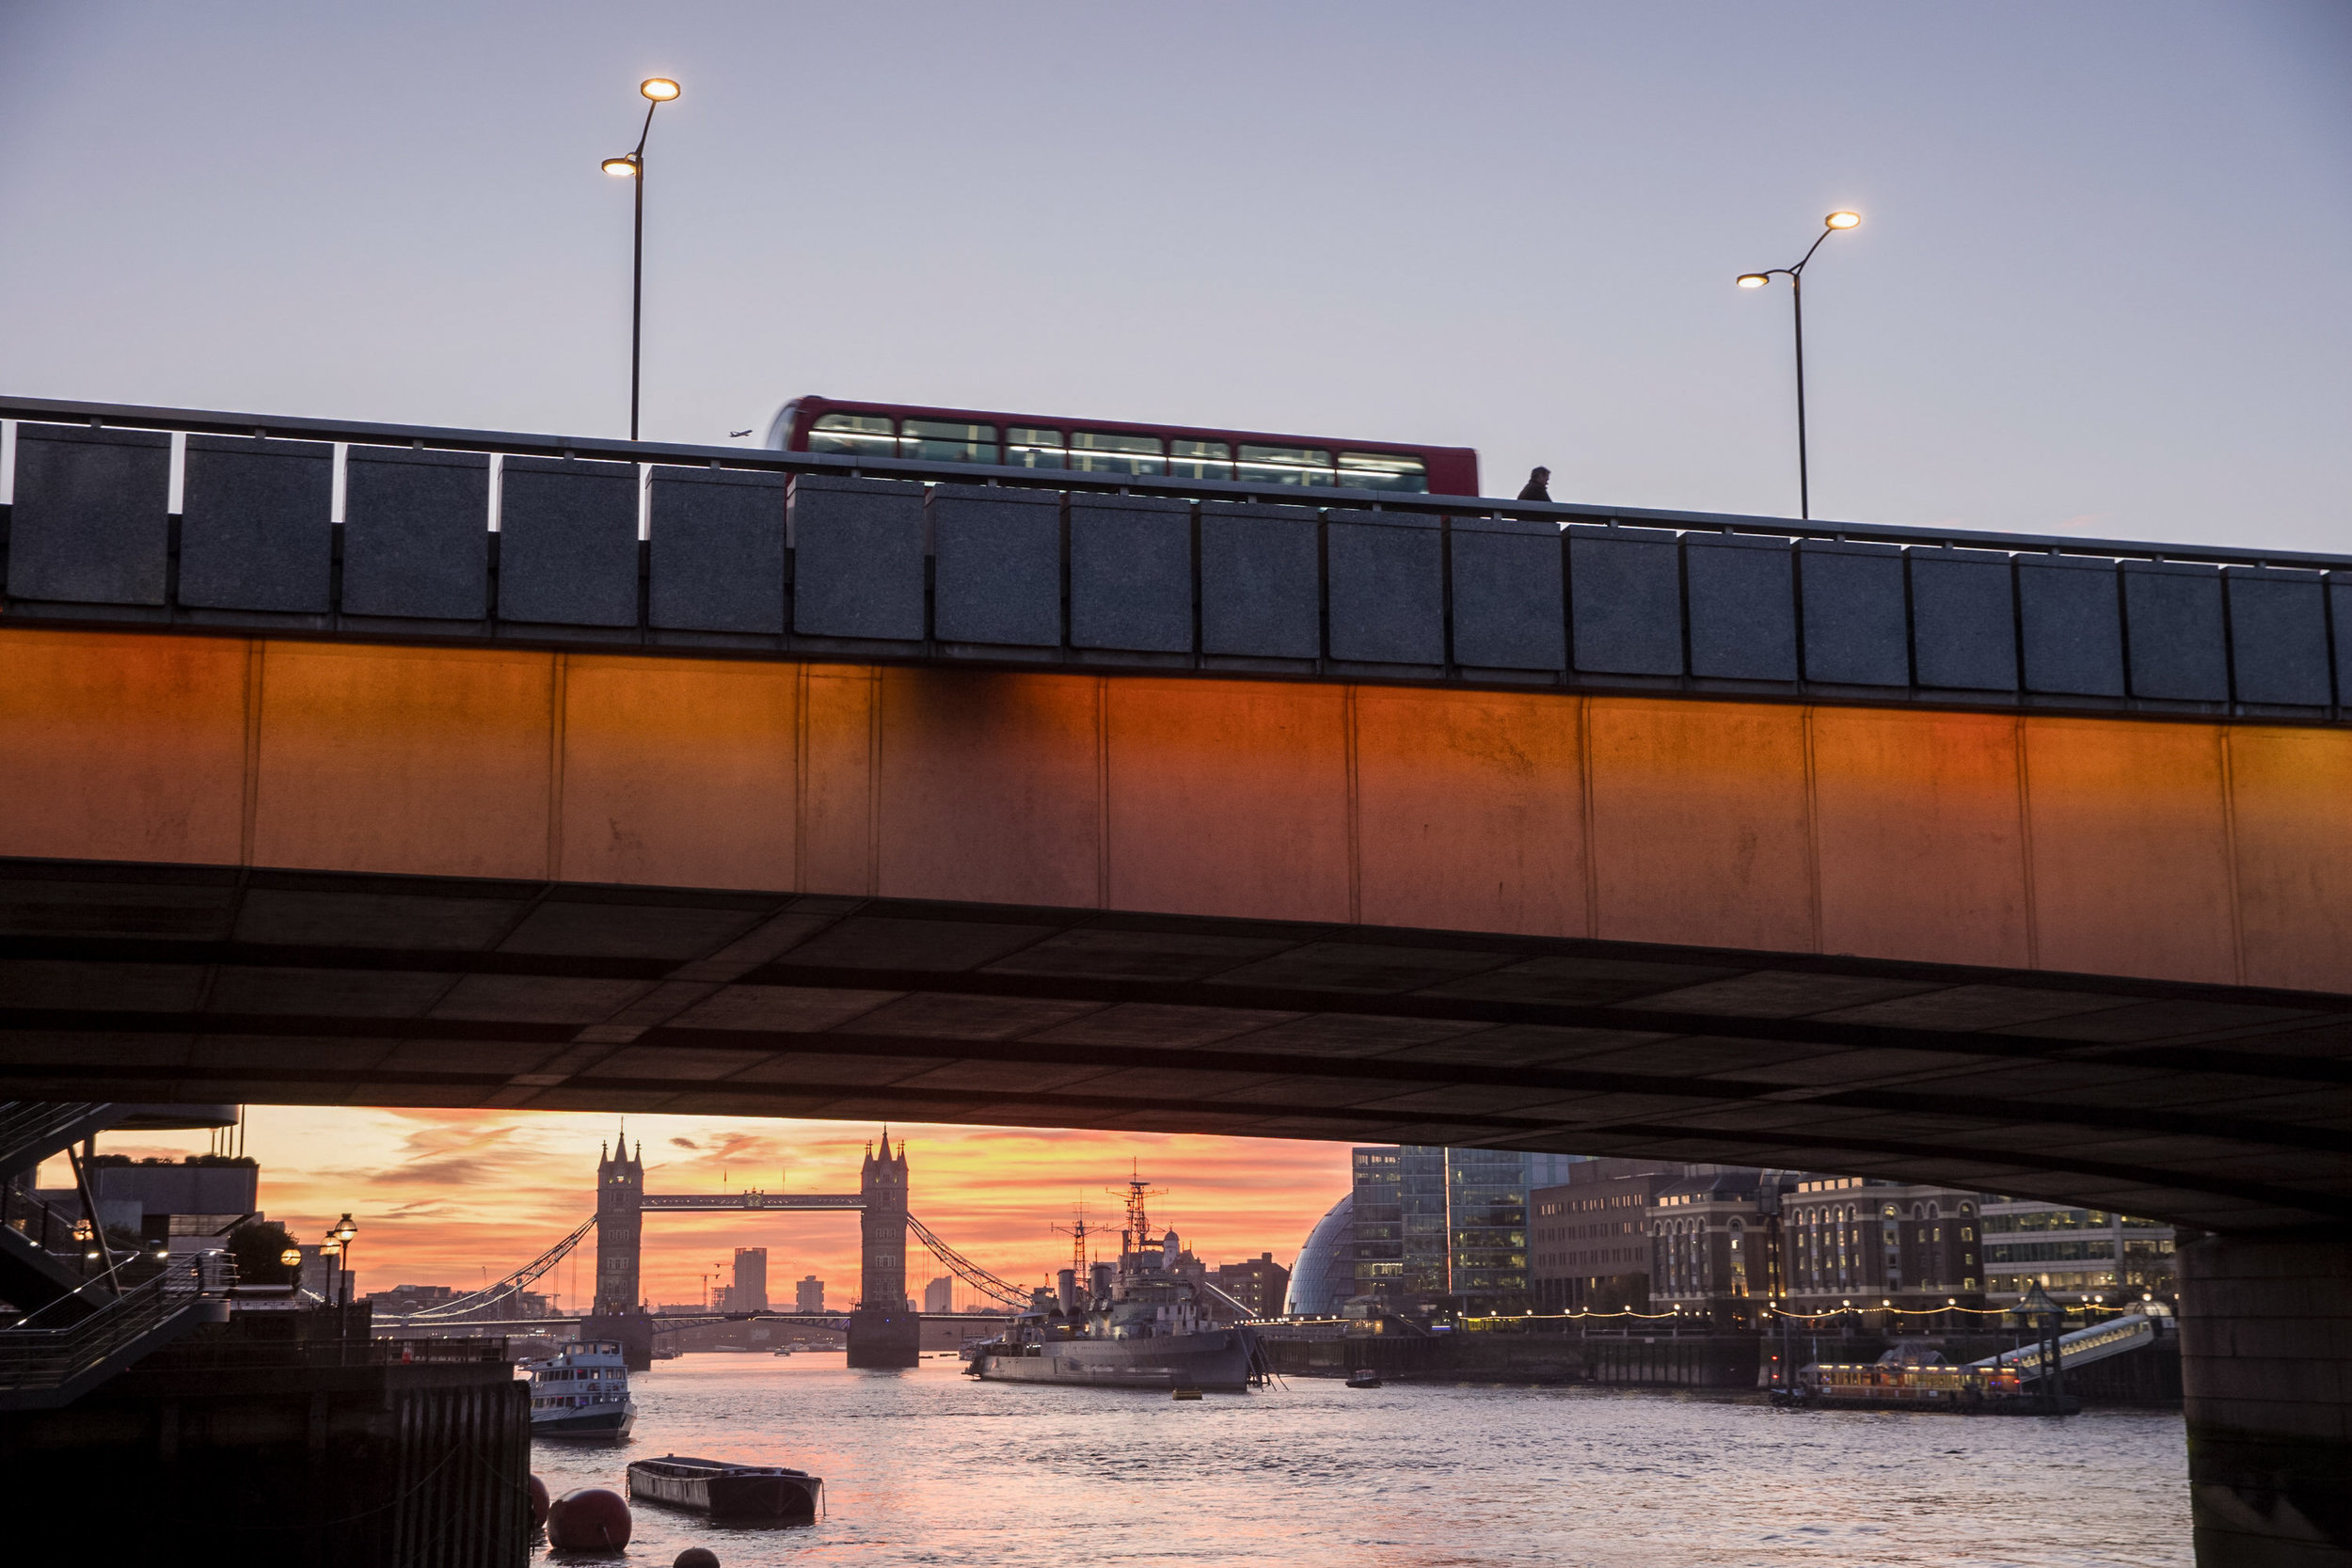 Sunrise behind Tower Bridge in London